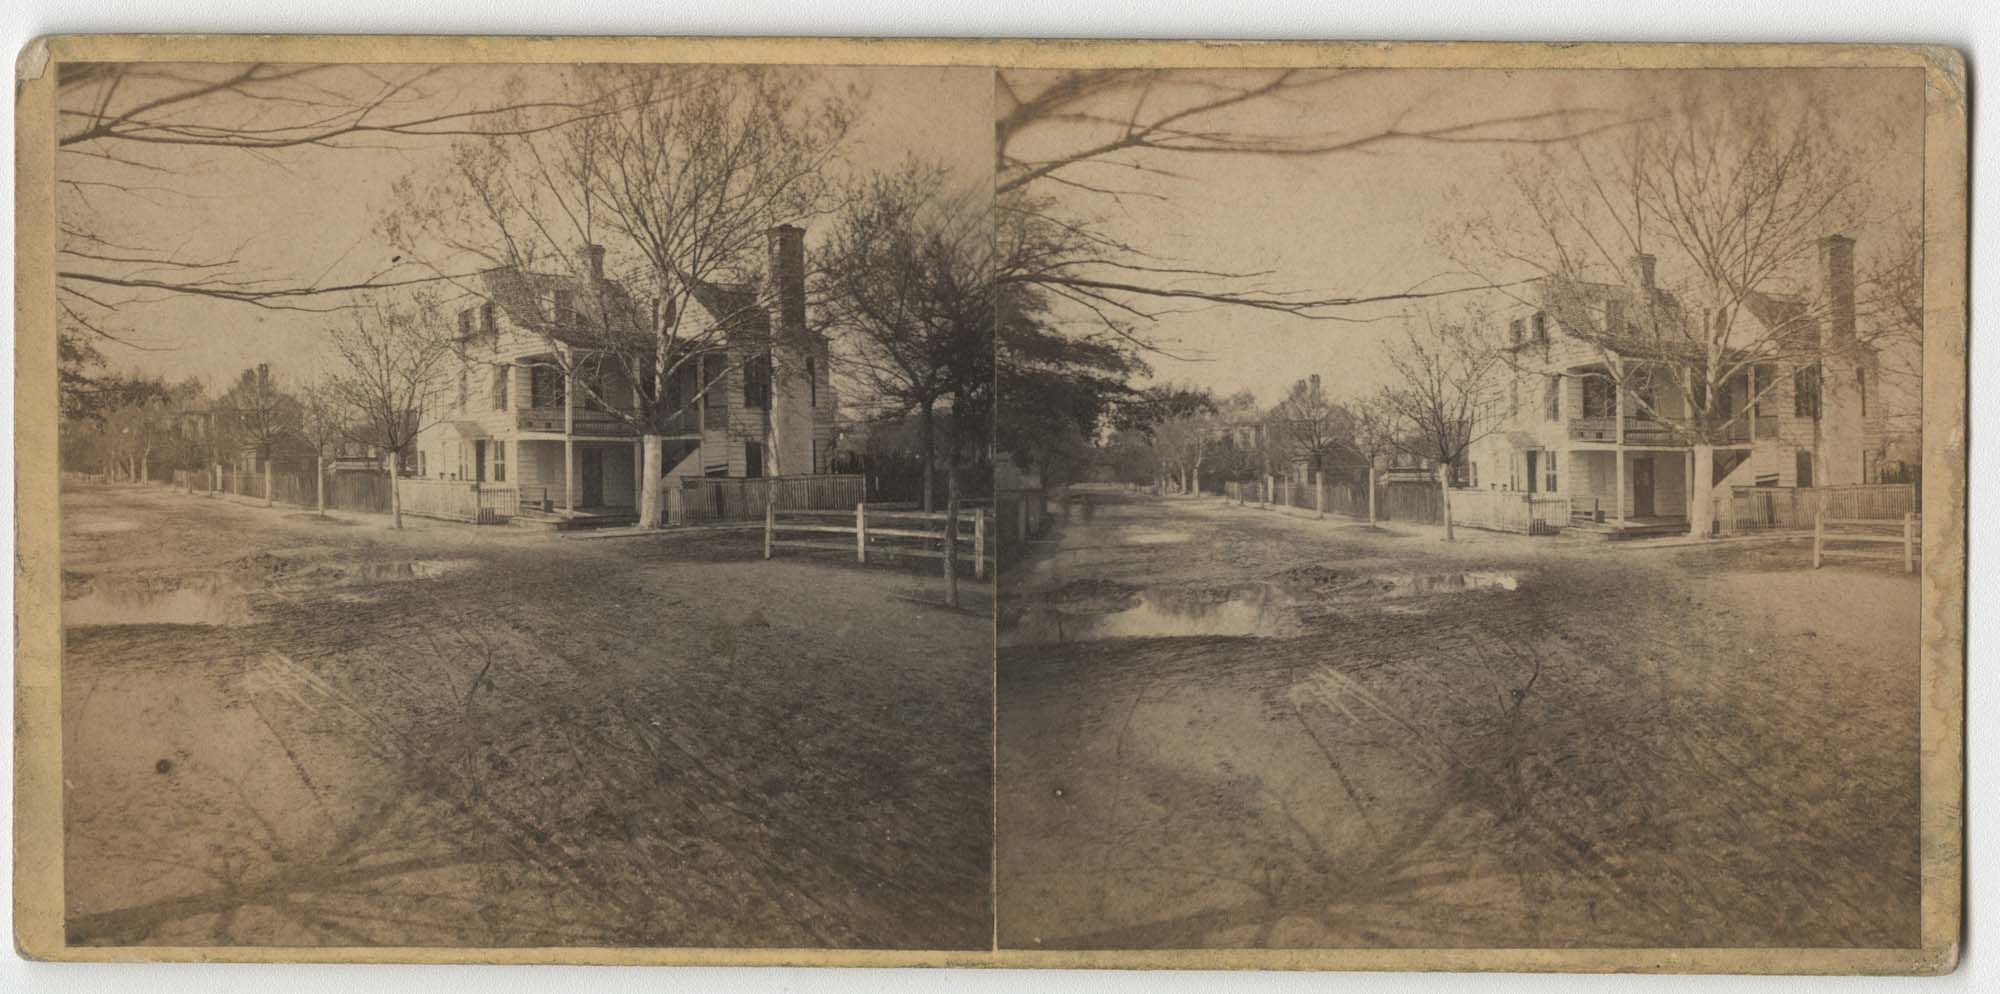 Cooley's Photograph Gallery